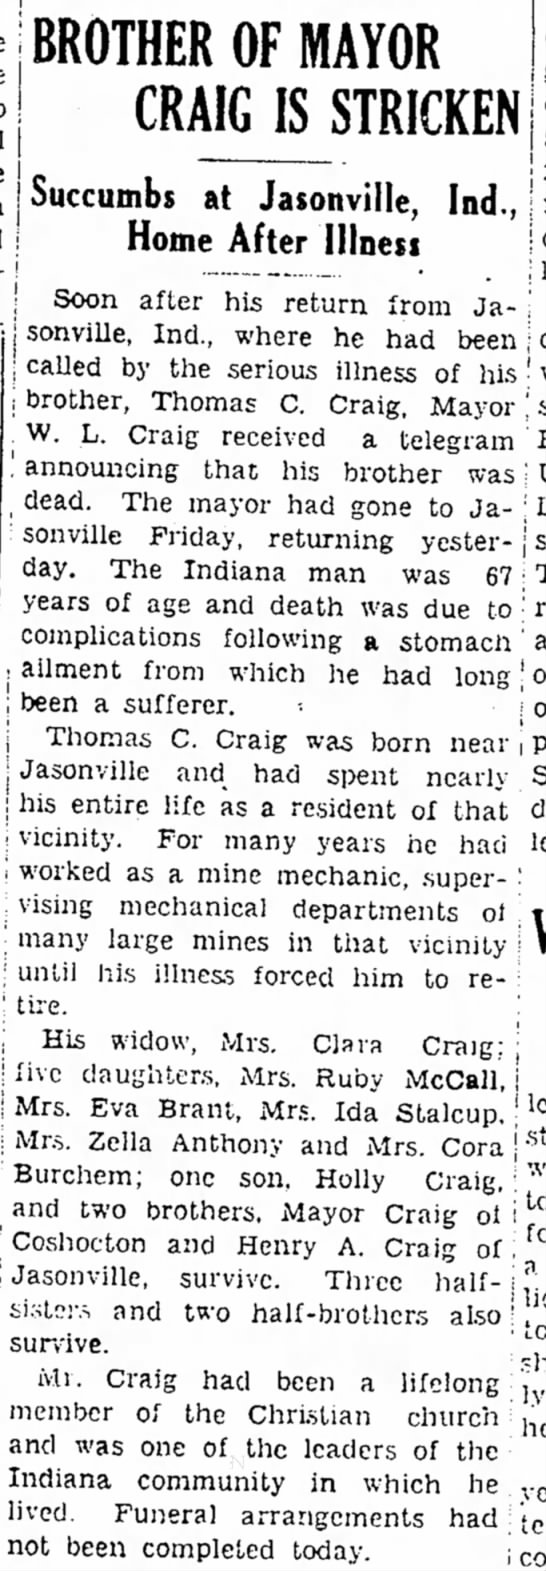 Obit: Thomas C Craig died at 67 in Jasonville Ind. 1936 -